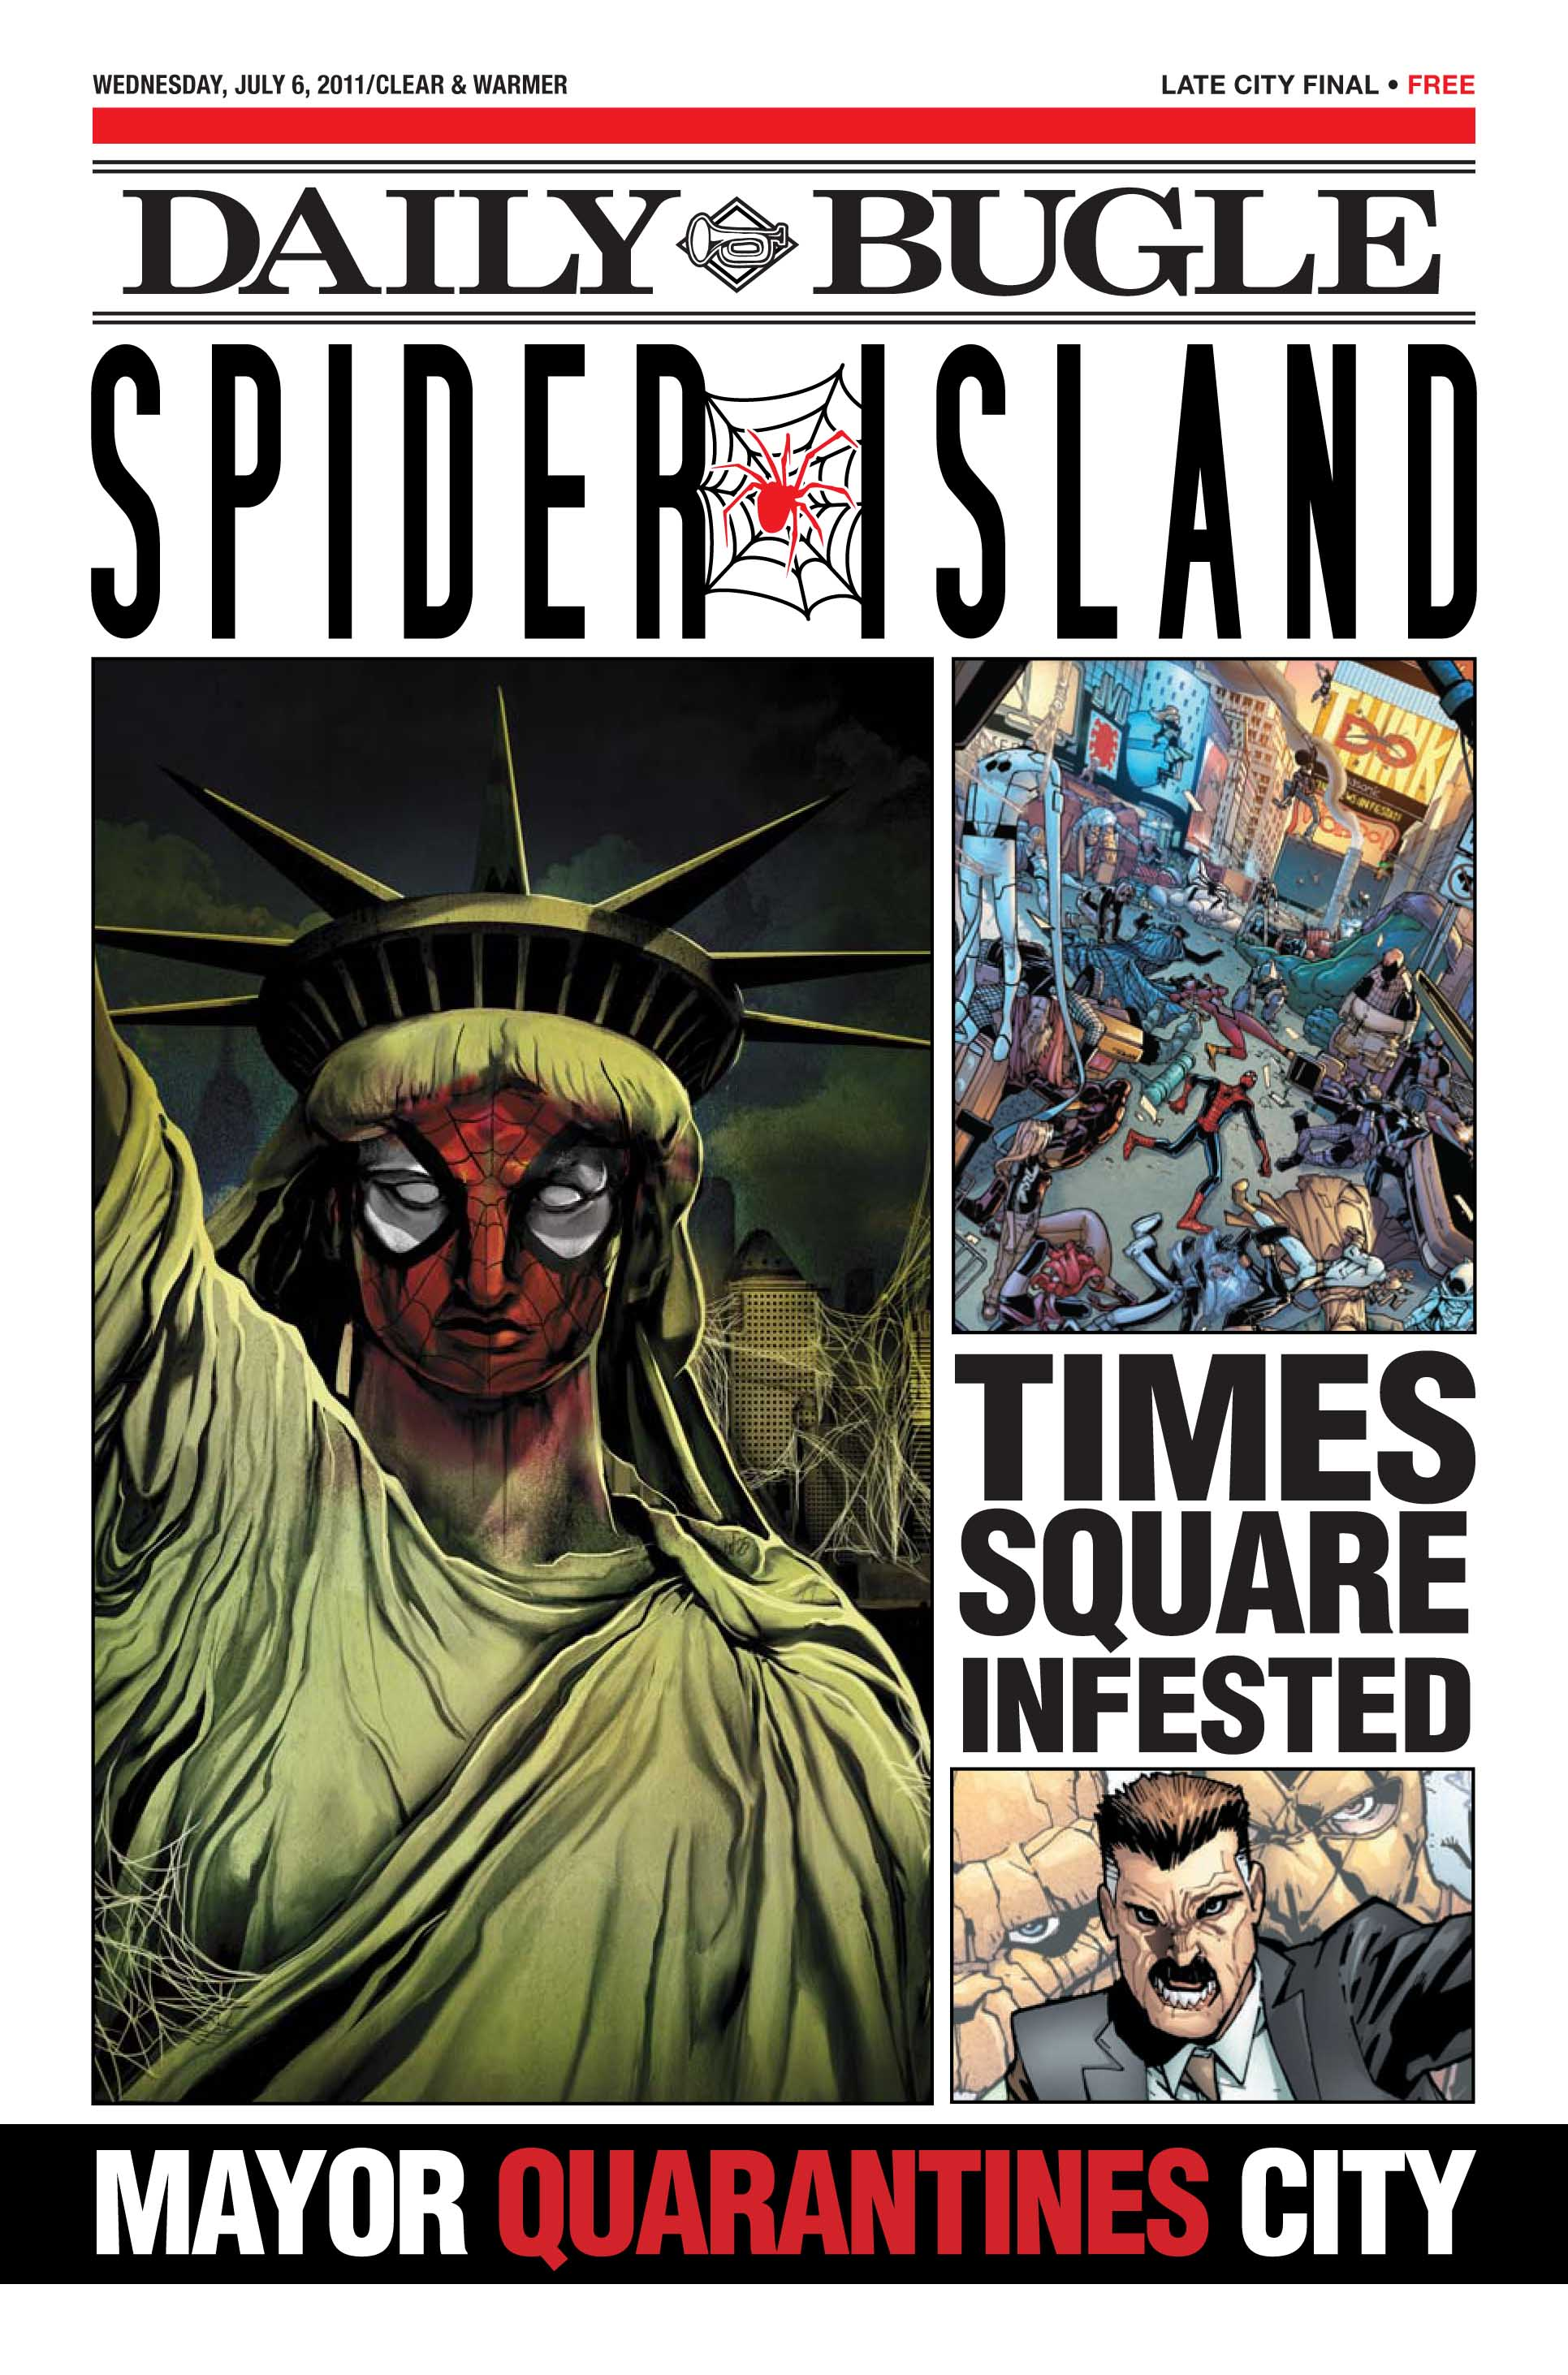 Spider-Island: Daily Bugle (2011) #1